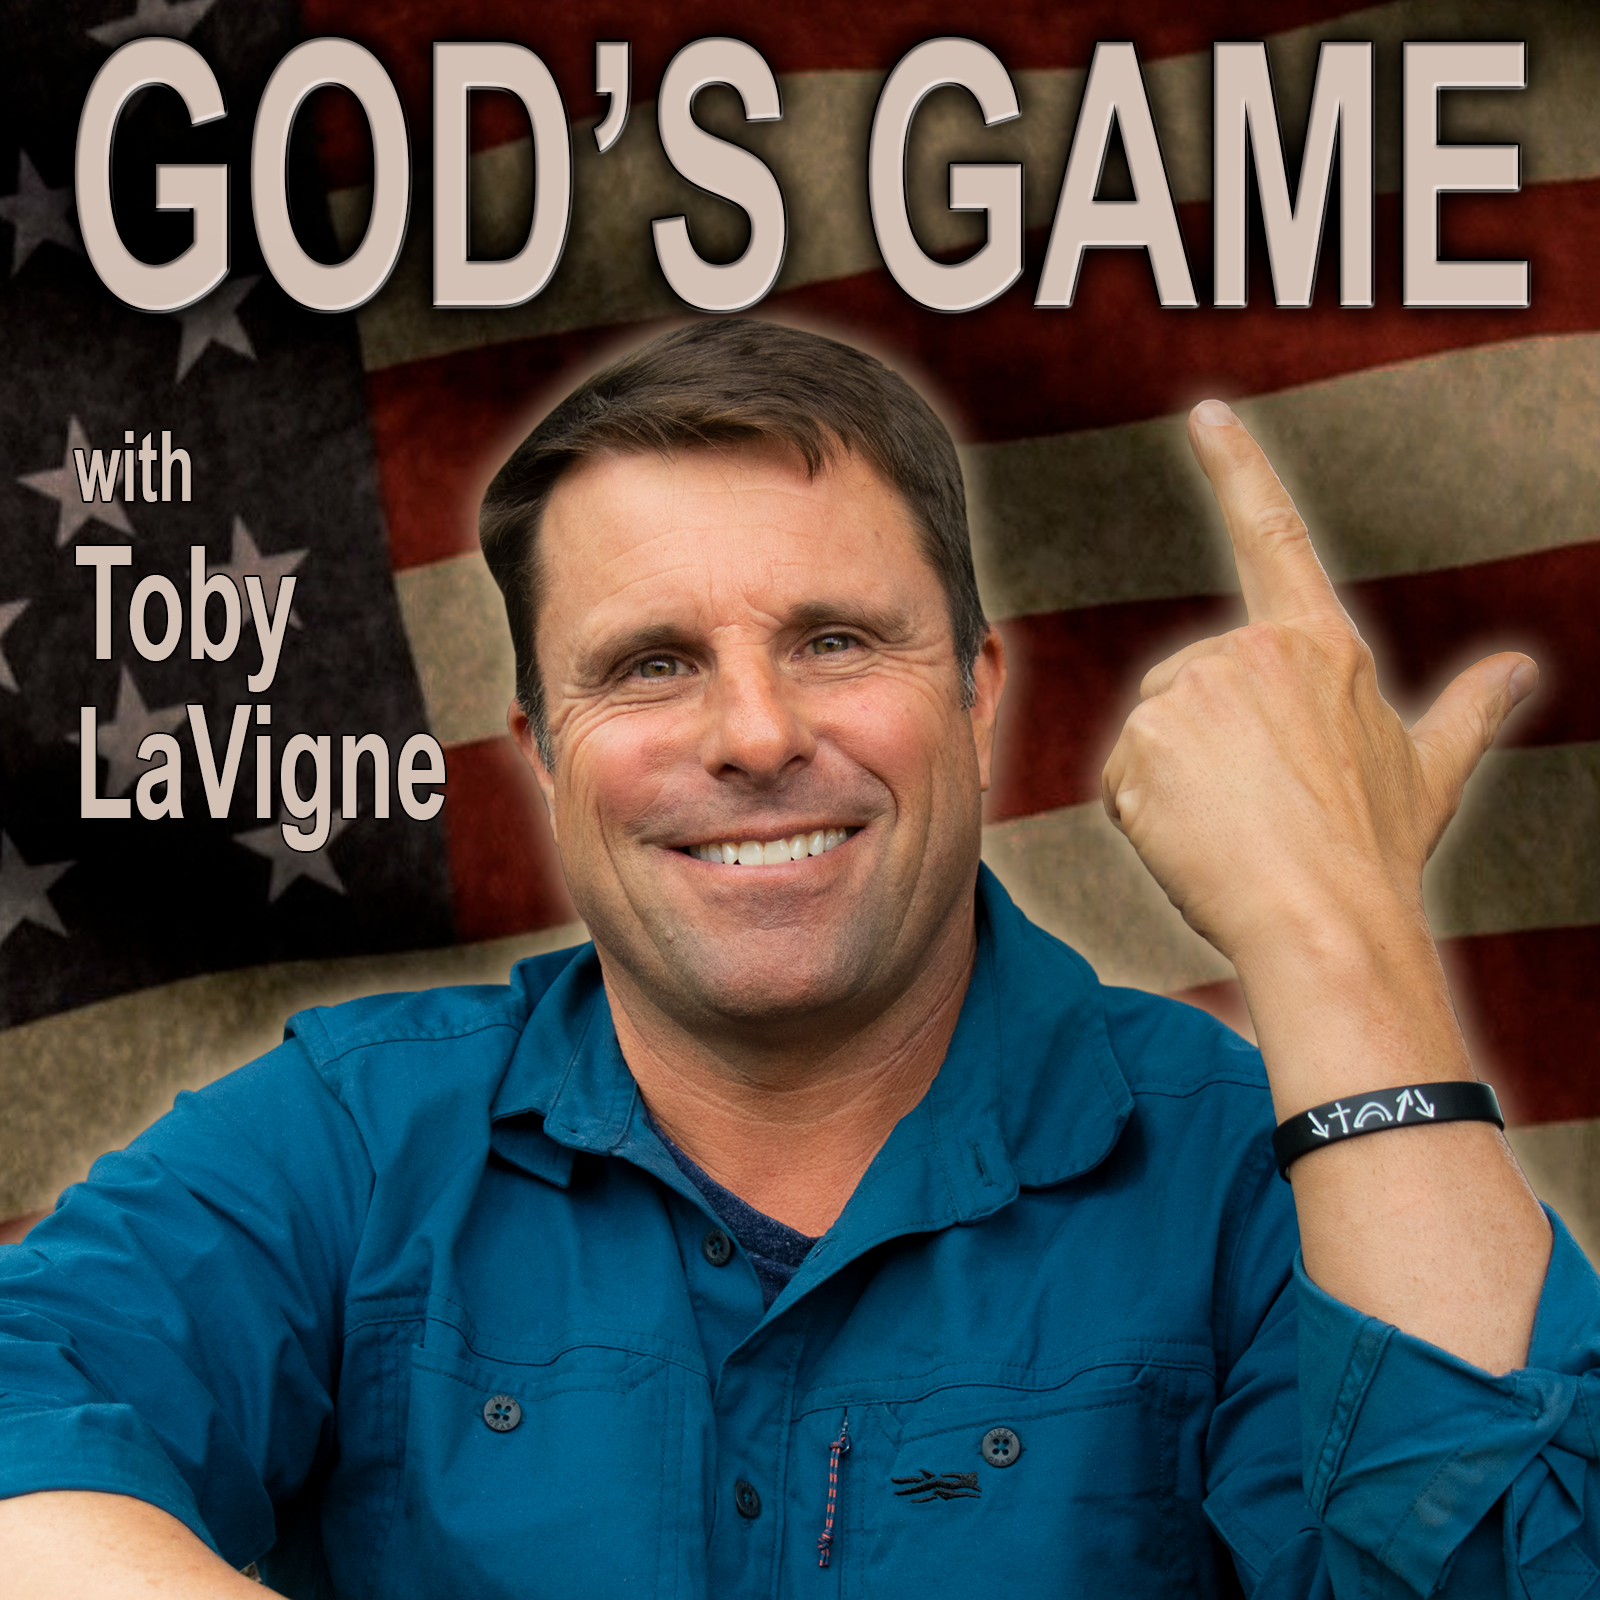 God's Game with Toby LaVigne show art